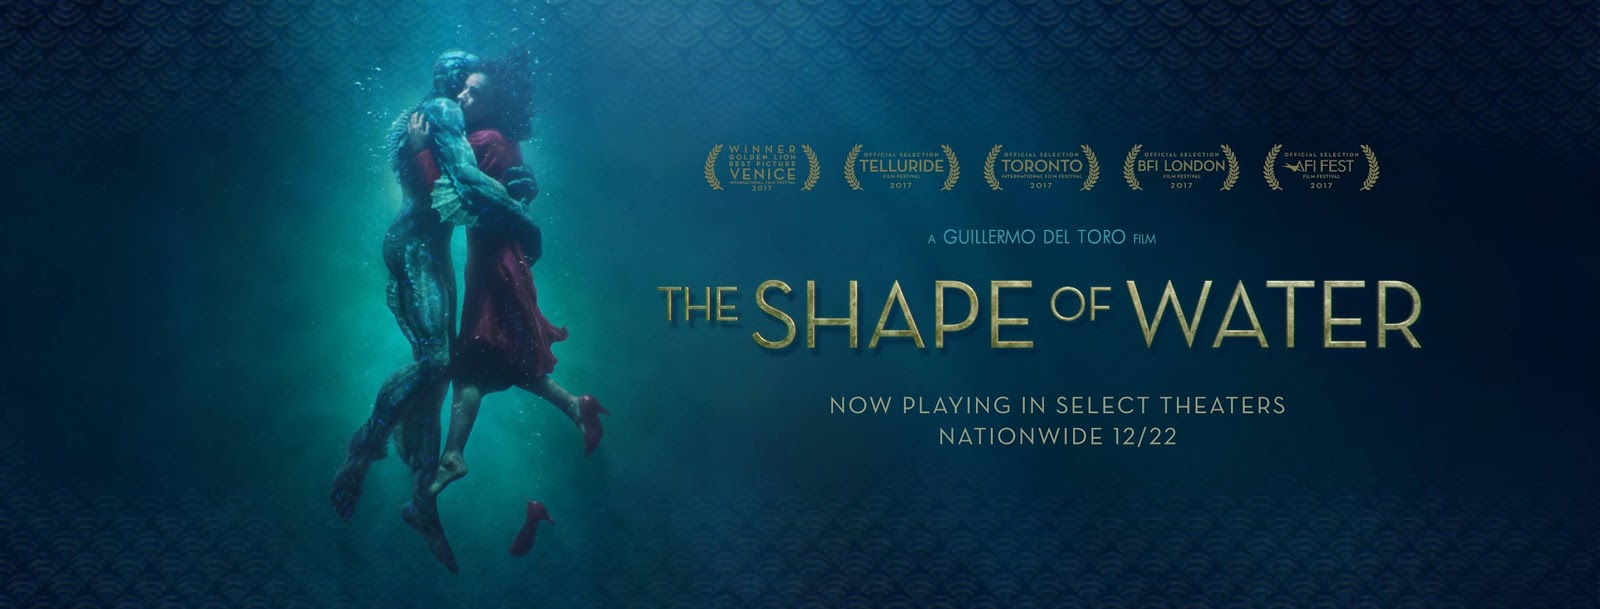 Frases De La Película The Shape Of Water La Forma Del Agua De